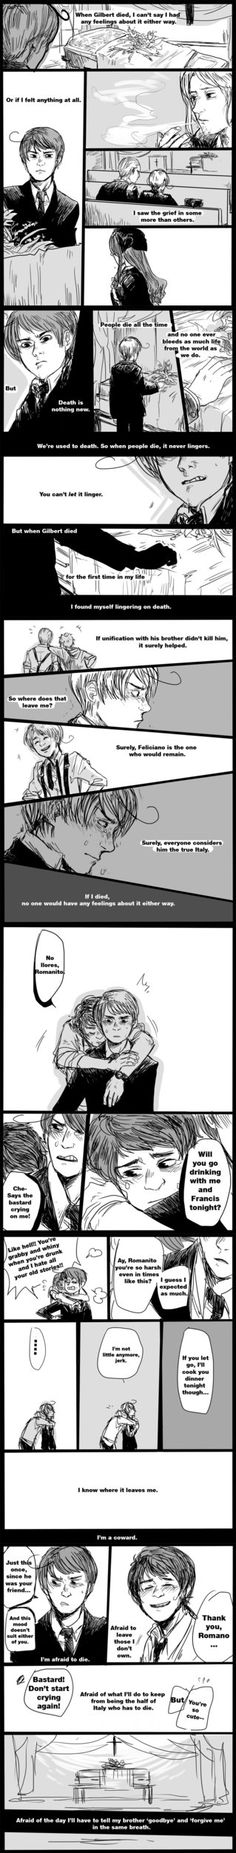 Fratricide pt.1 by ryounkura on deviantART *sniff* this made me cry, I'm not joking. Prussia dying and the thought of Romano leaving Veneziano in one strip.... excuse me while I go to my corner and cry every tear I have left in me....